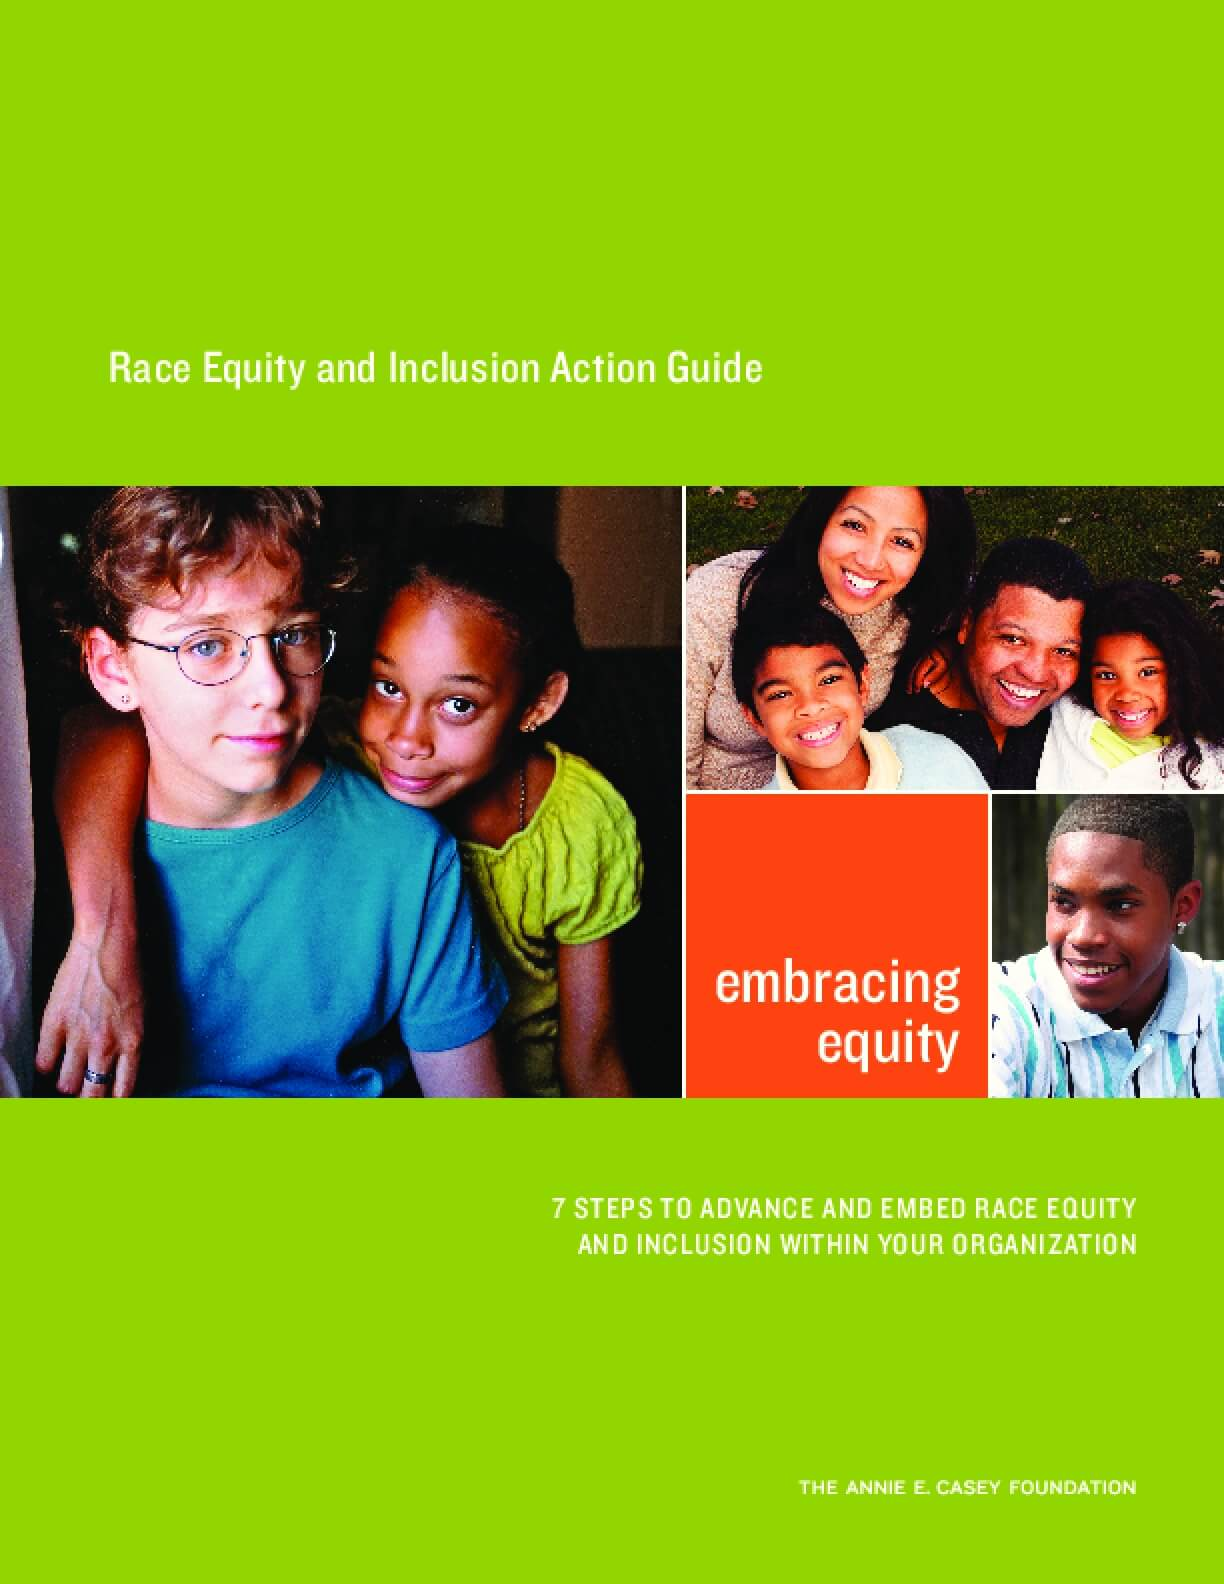 Race Equity and Inclusion Action Guide: 7 Steps to Advance and Embed Race Equity and Inclusion Within Your Organization.